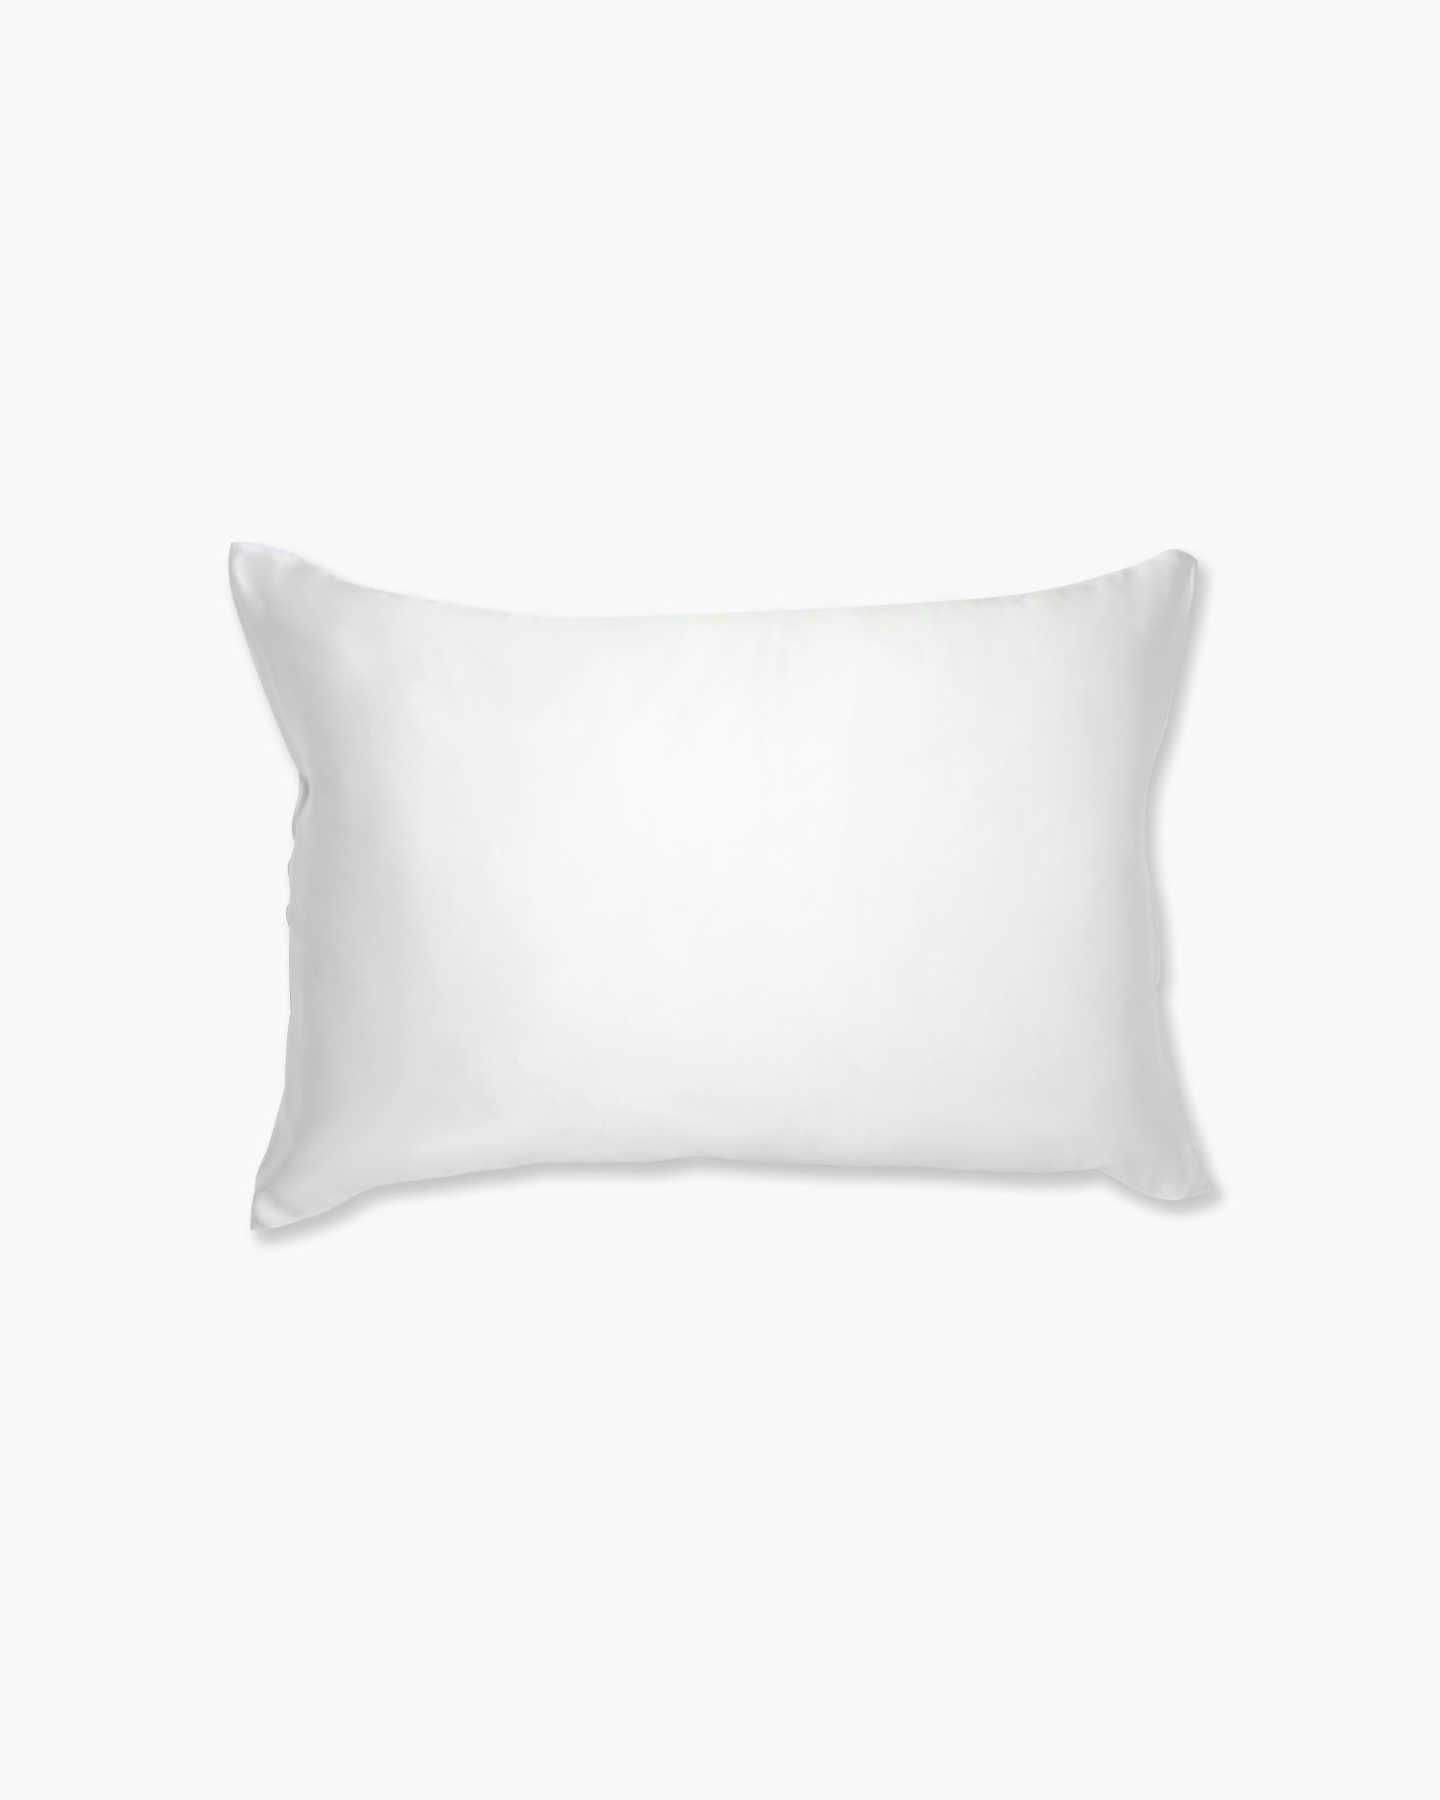 Pair With - Mulberry Silk Beauty Sleep Pillowcase - Black